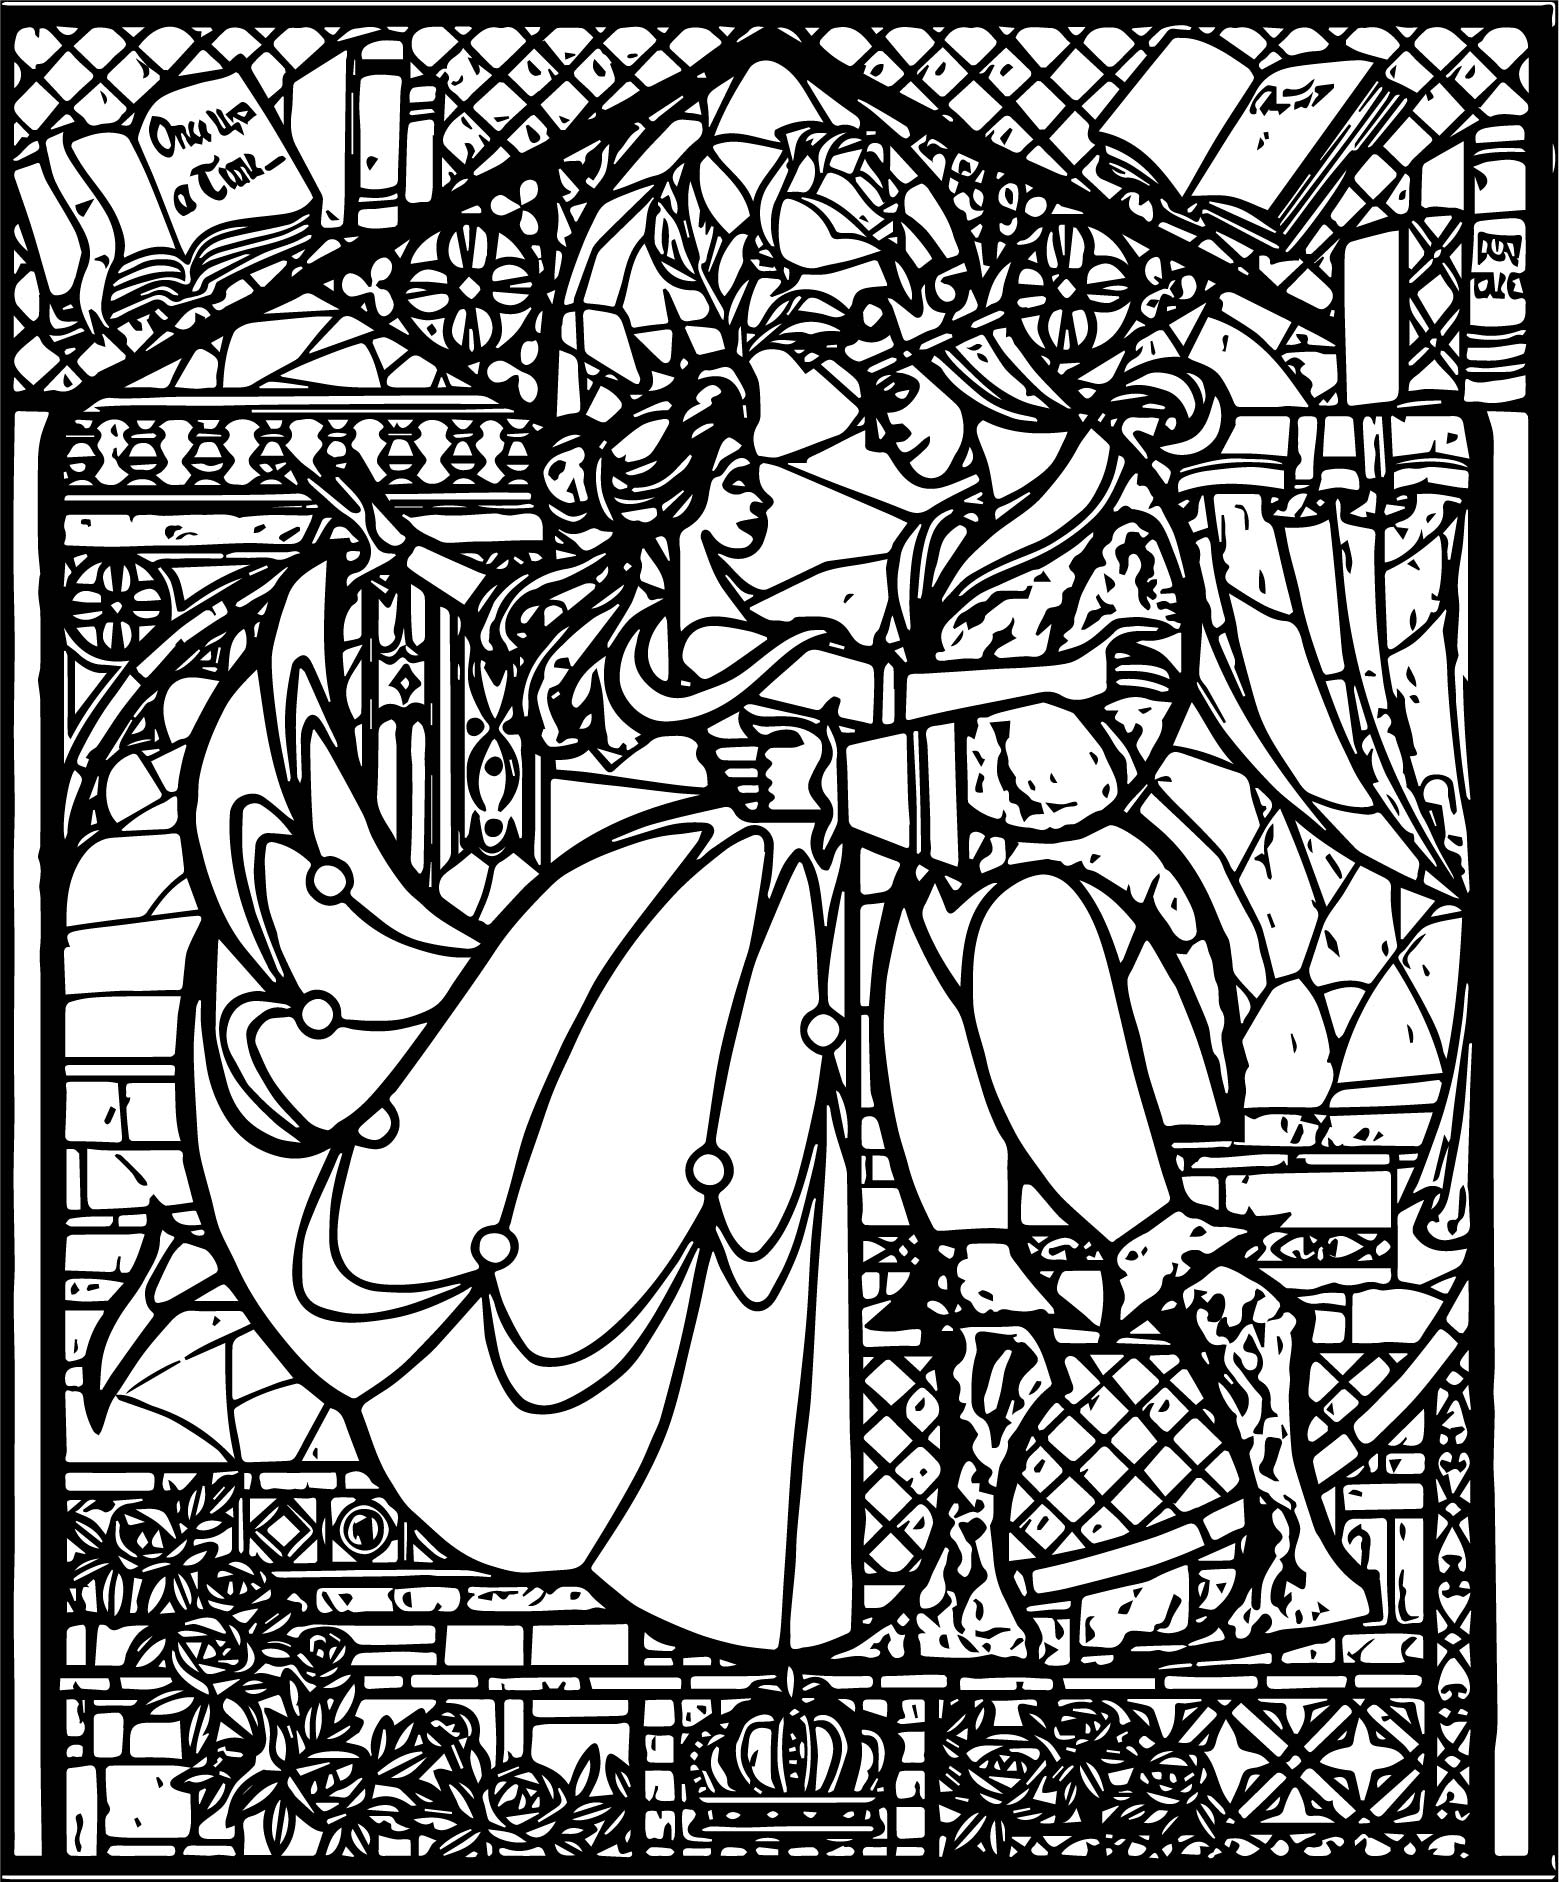 stained glass coloring pages for adults stained glass coloring pages for adults best coloring coloring pages stained for adults glass